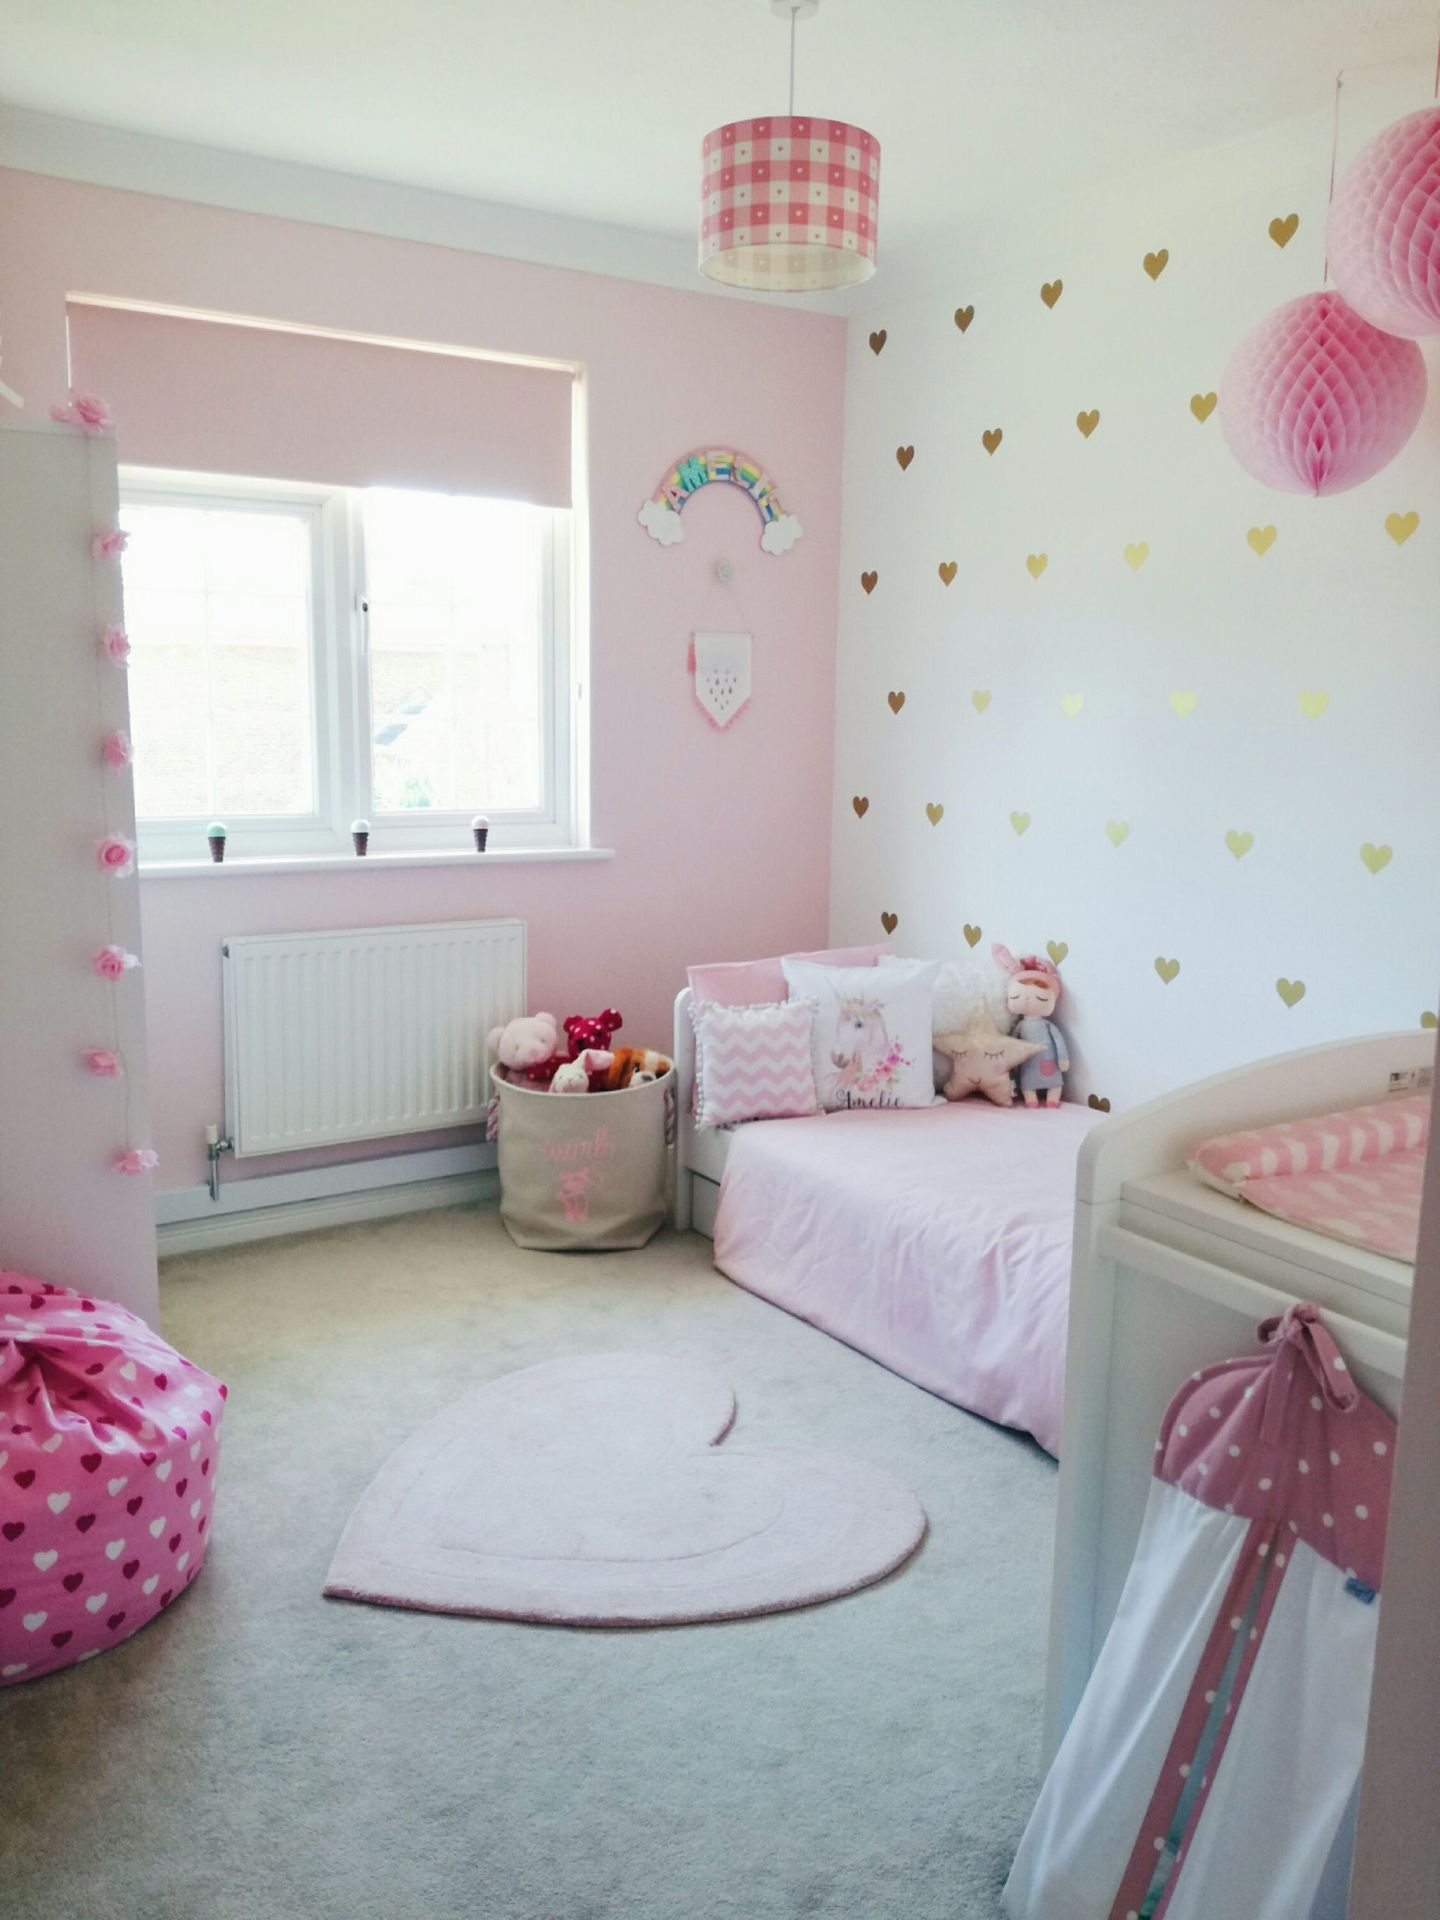 gold styled bedroom recognise about in life simply by room me from s single we first amazing can transformation post when it would pink amelie soft read moved here this hardly amelies toddler and you